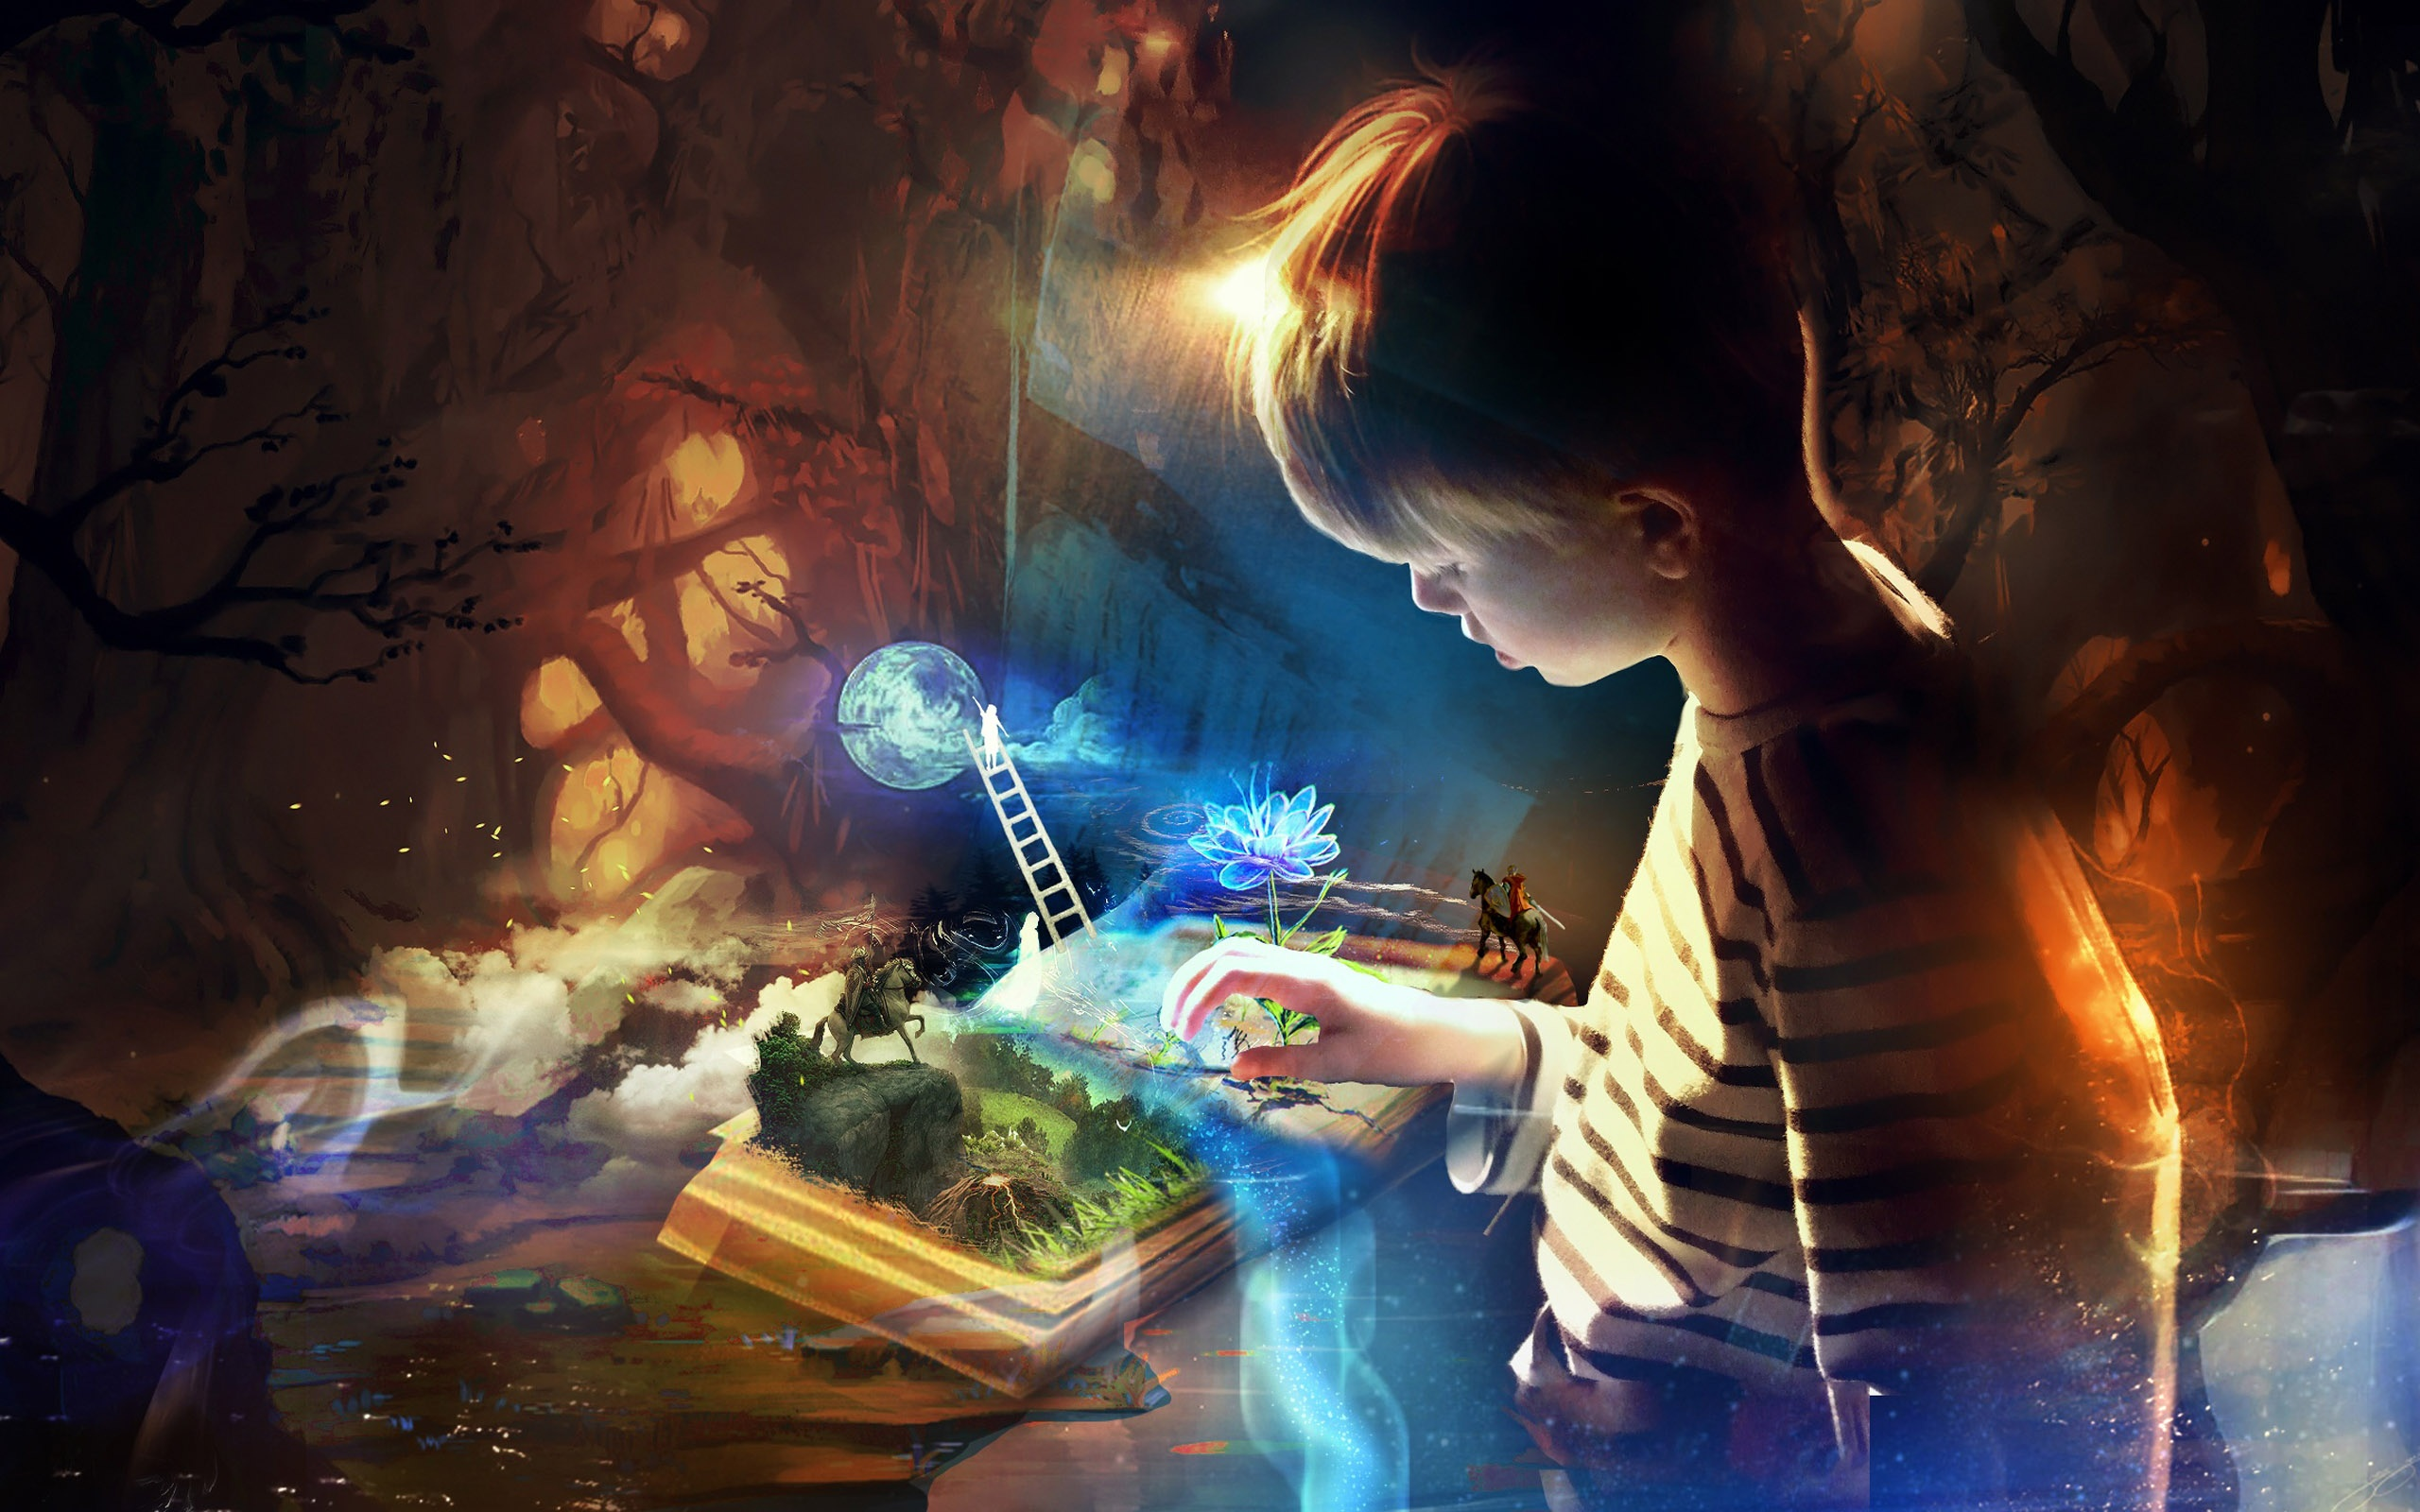 books inspire imagination 2560x1600